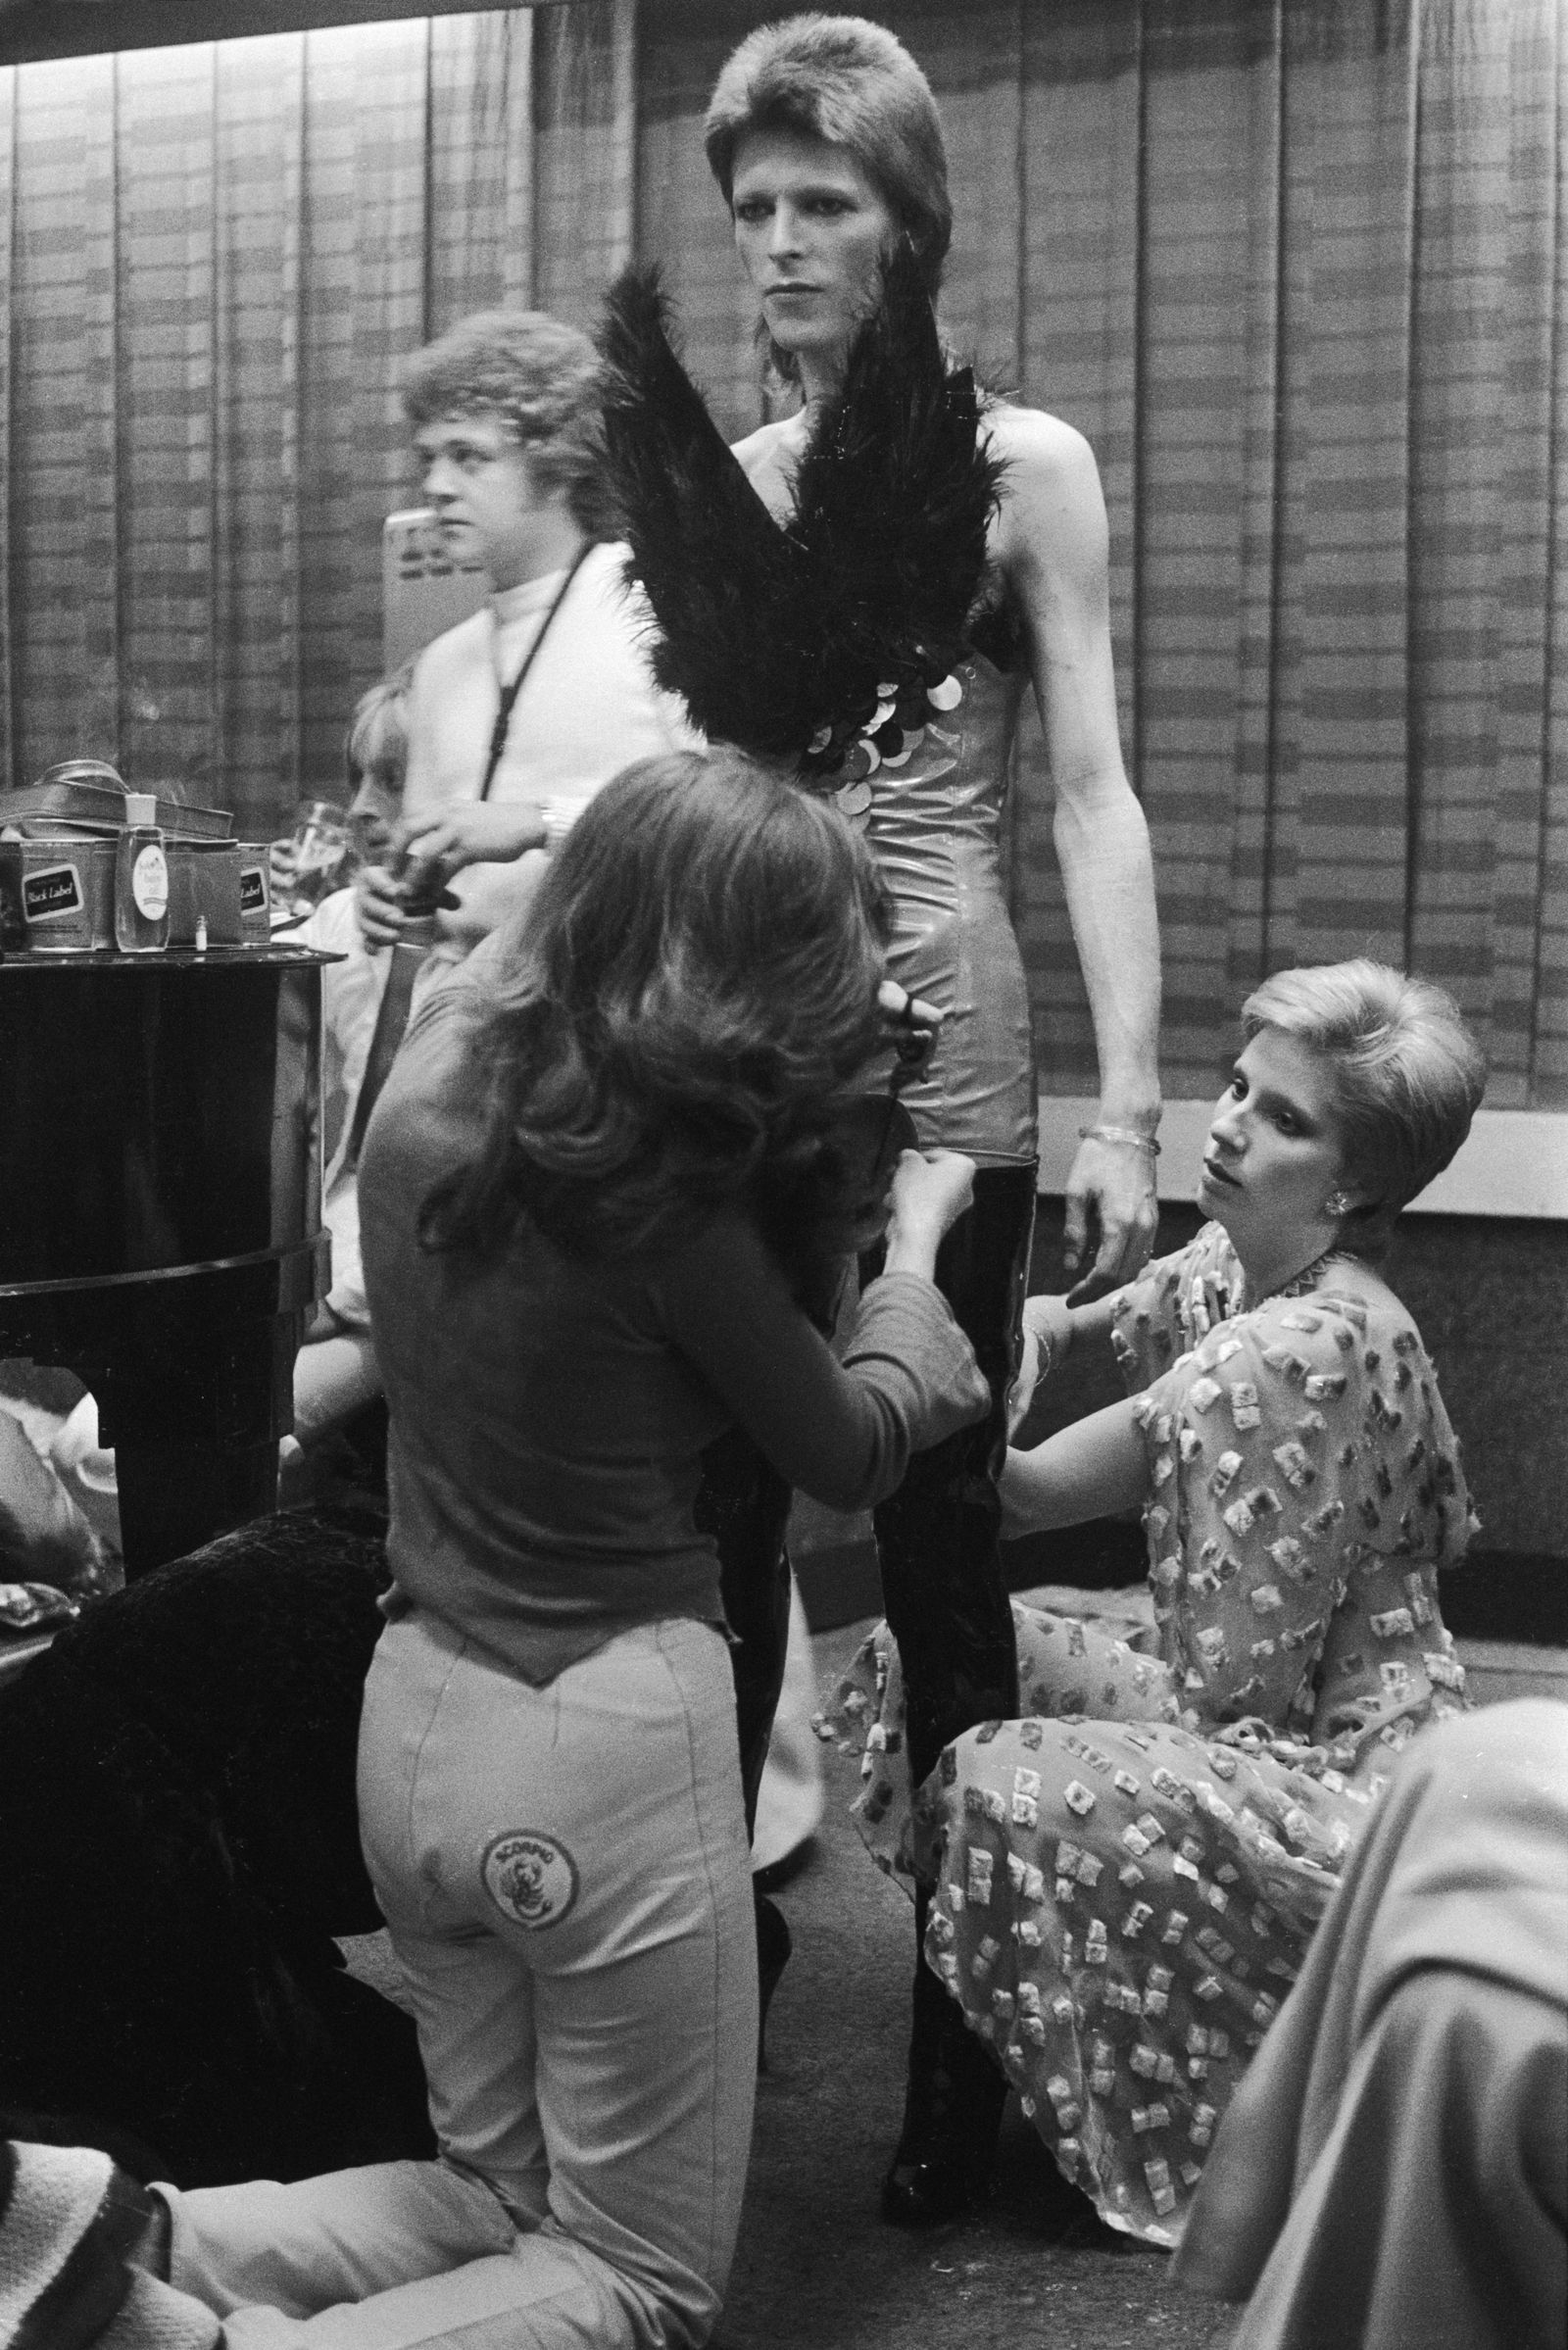 Photos Of Musicians Backstage In The 70s Angie Bowie David Bowie Bowie